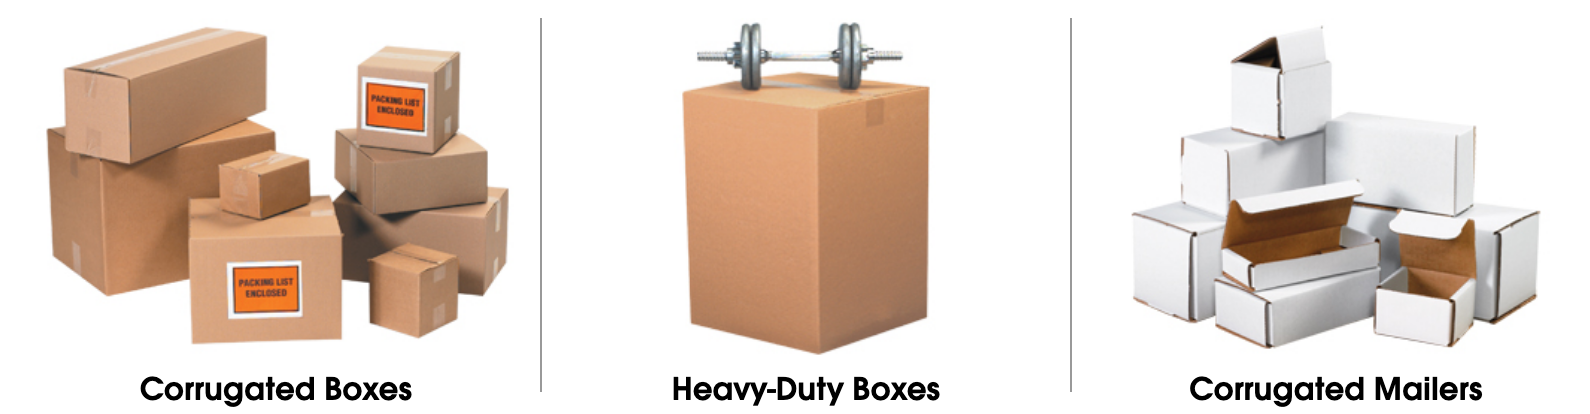 Corrugated cardboard shipping boxes nationwide